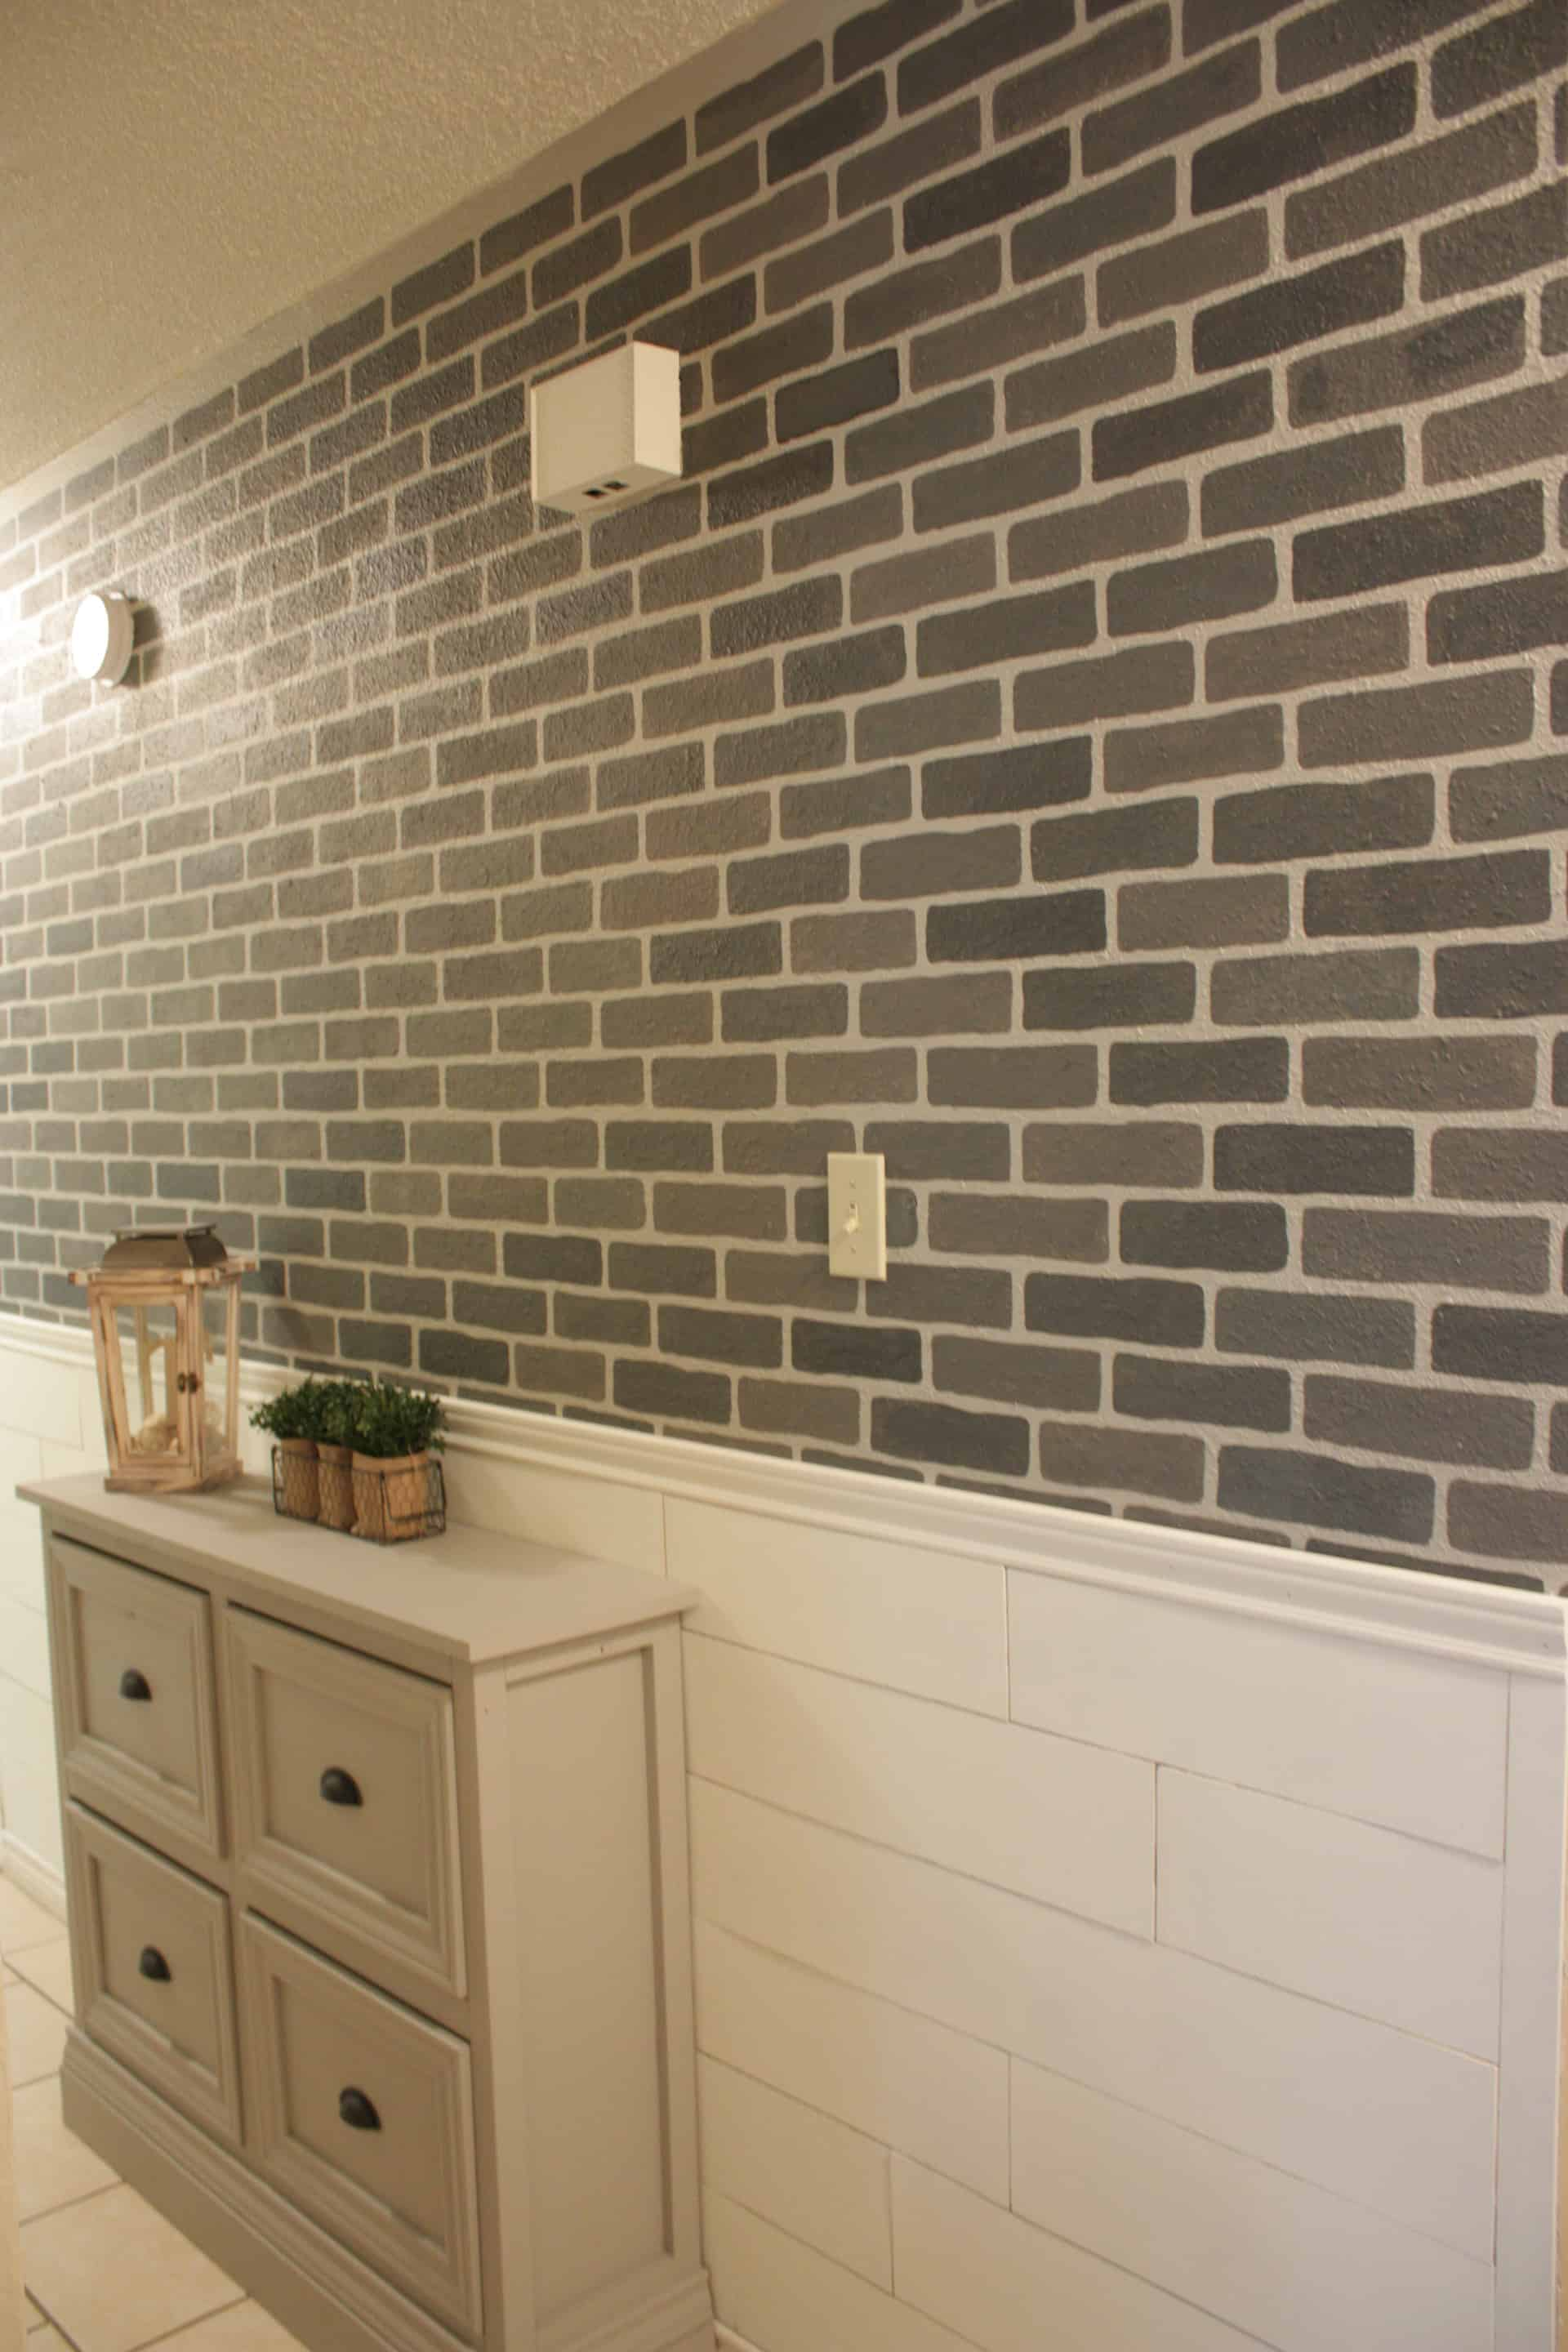 DIY Stenciled Brick Wall